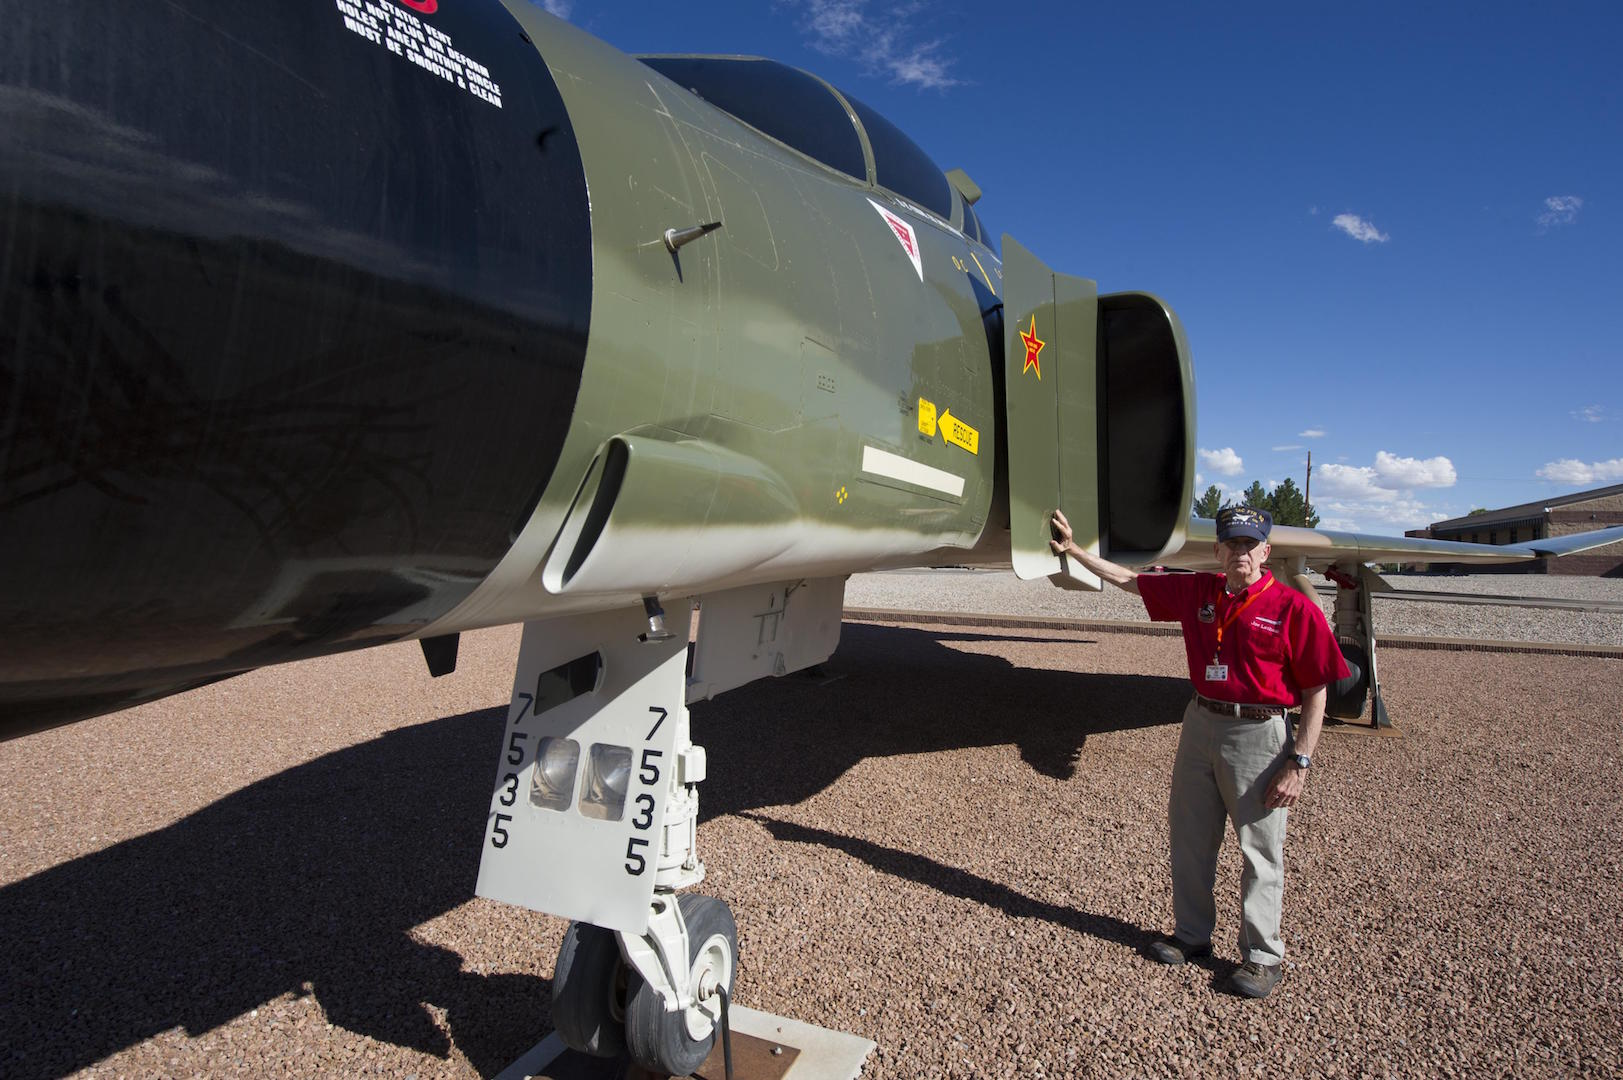 Col. (Ret.) Joe Latham, previously an F-4 Phantom pilot from Holloman Air Force Base, N.M., stops Sept. 13, 2016, to reminisce next to the F-4 adorned with his name Sept. 13, 2016, at Holloman AFB's Heritage Park. Latham's visit was part of Holloman's annual Phantom Society Tour where 160 aircraft enthusiasts, including veterans and non-veterans with aviation backgrounds, visit various base locations. The tour included an F-16 Fighting Falcon briefing and static display, travel to Holloman's High Speed Test Track, the opportunity to view QF-4s and F-16s in flight, and a visit to Heritage Park to view displays of various aircraft historically stationed at Holloman AFB. (U.S. Air Force photo by Master Sgt. Matthew McGovern)